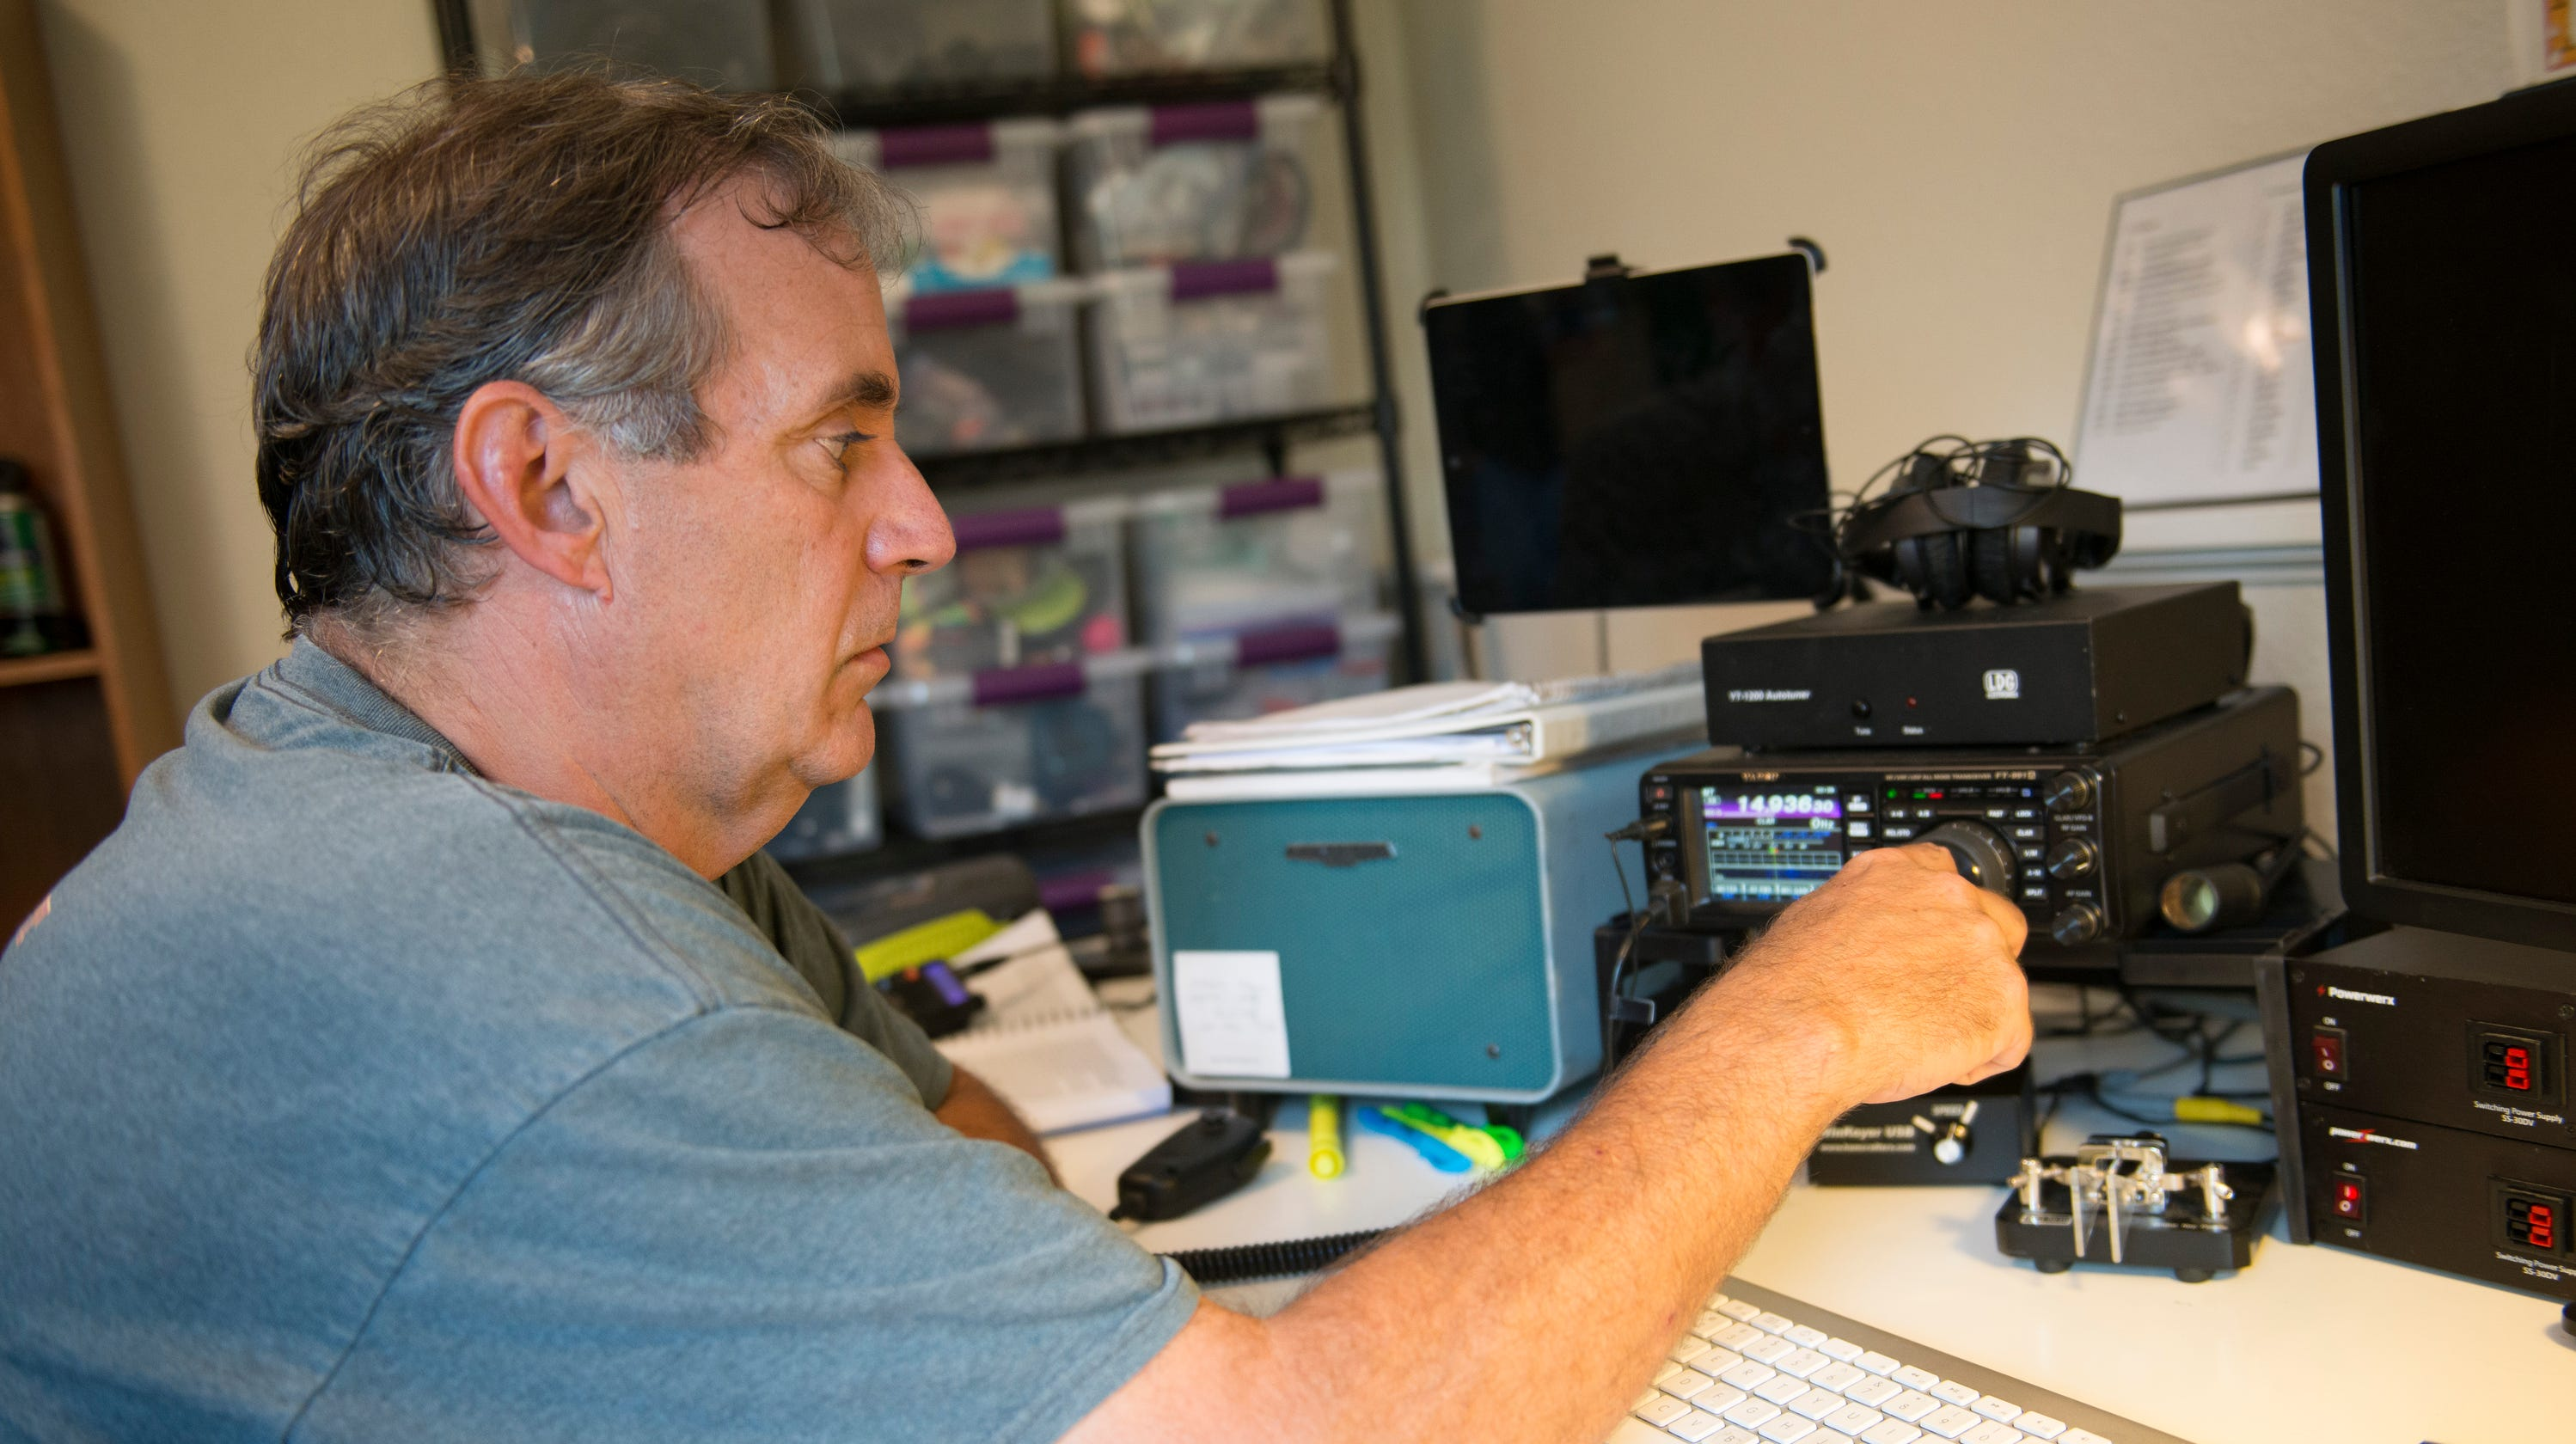 Time-of-day radio broadcasts coming from Fort Collins could